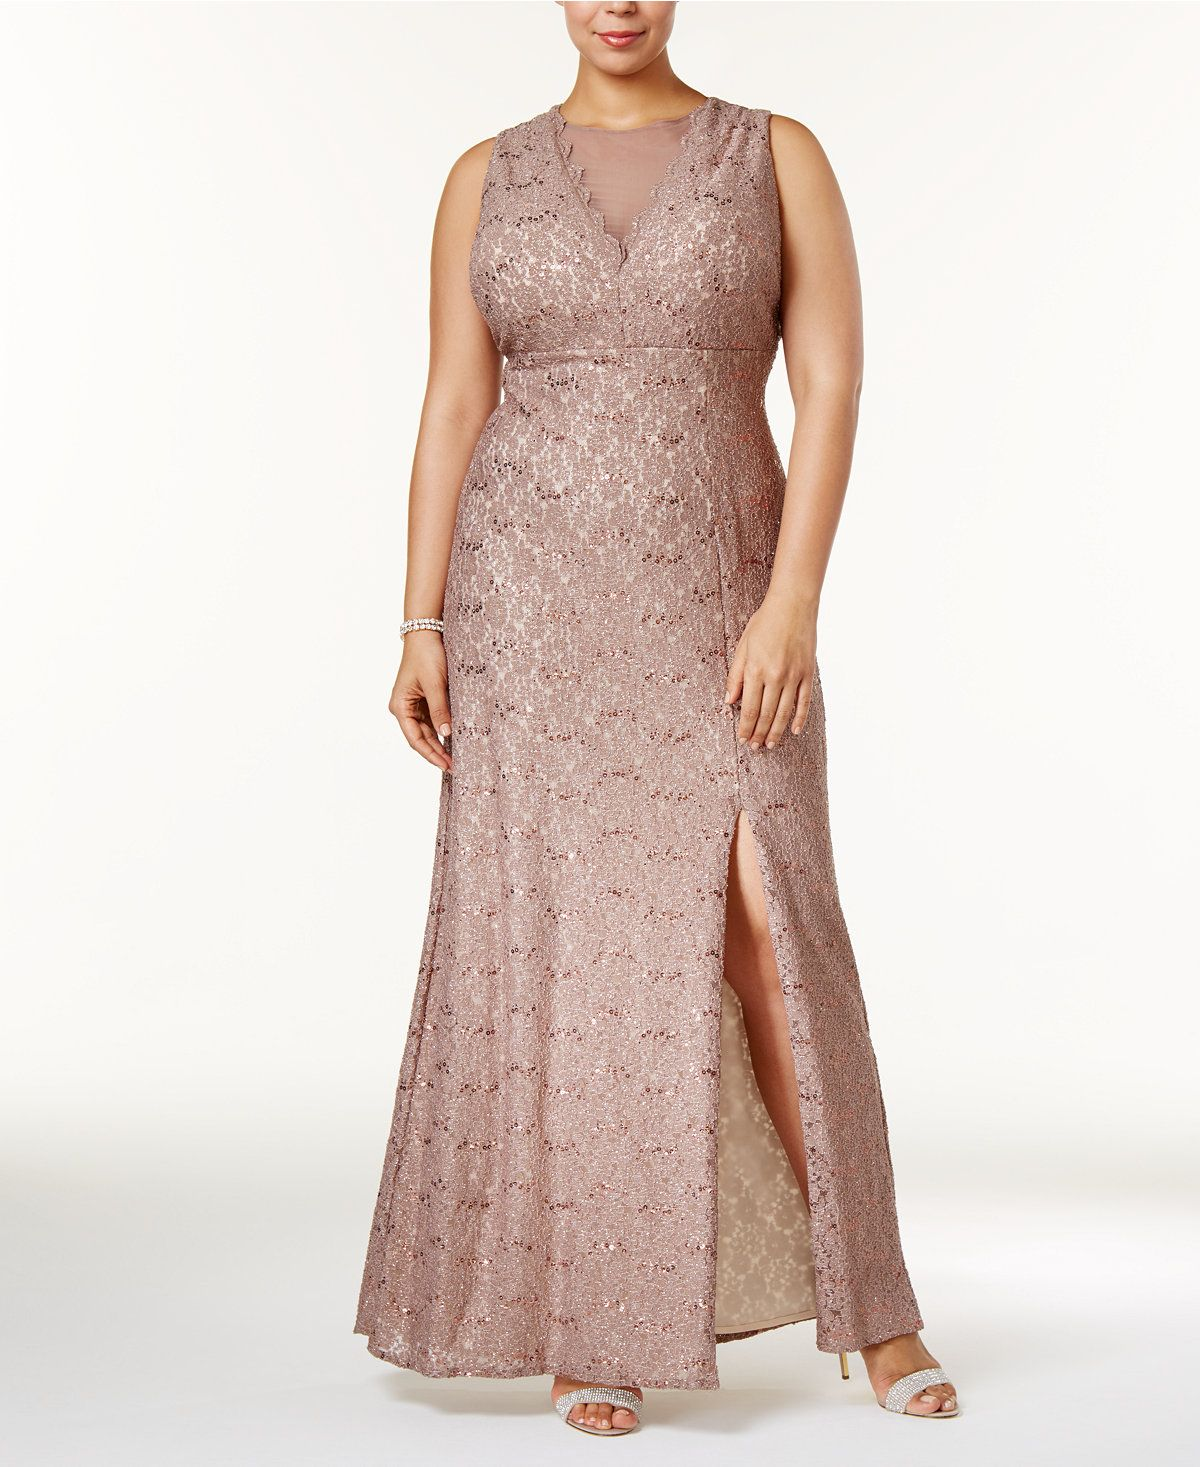 Plus Size Illusion Glitter Lace Gown | Pinterest